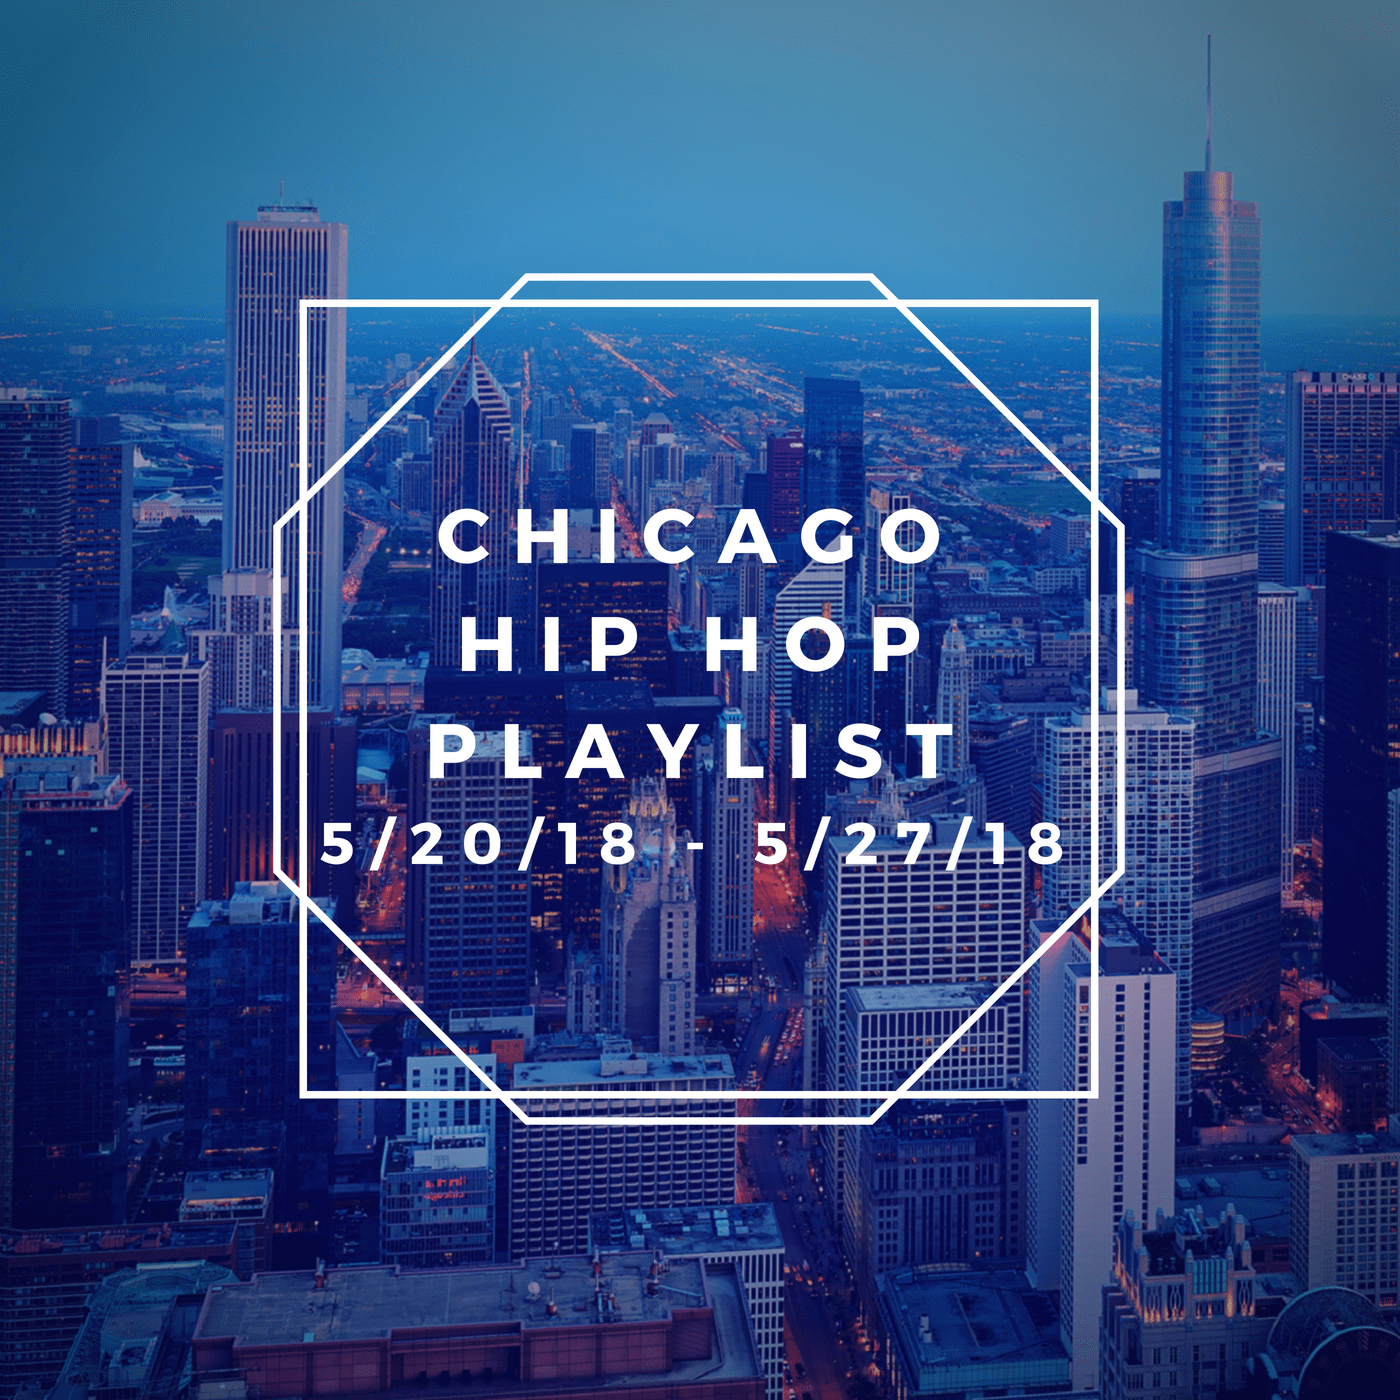 Chicago Rap/Hip Hop Playlist: 5/20/18-5/27/18